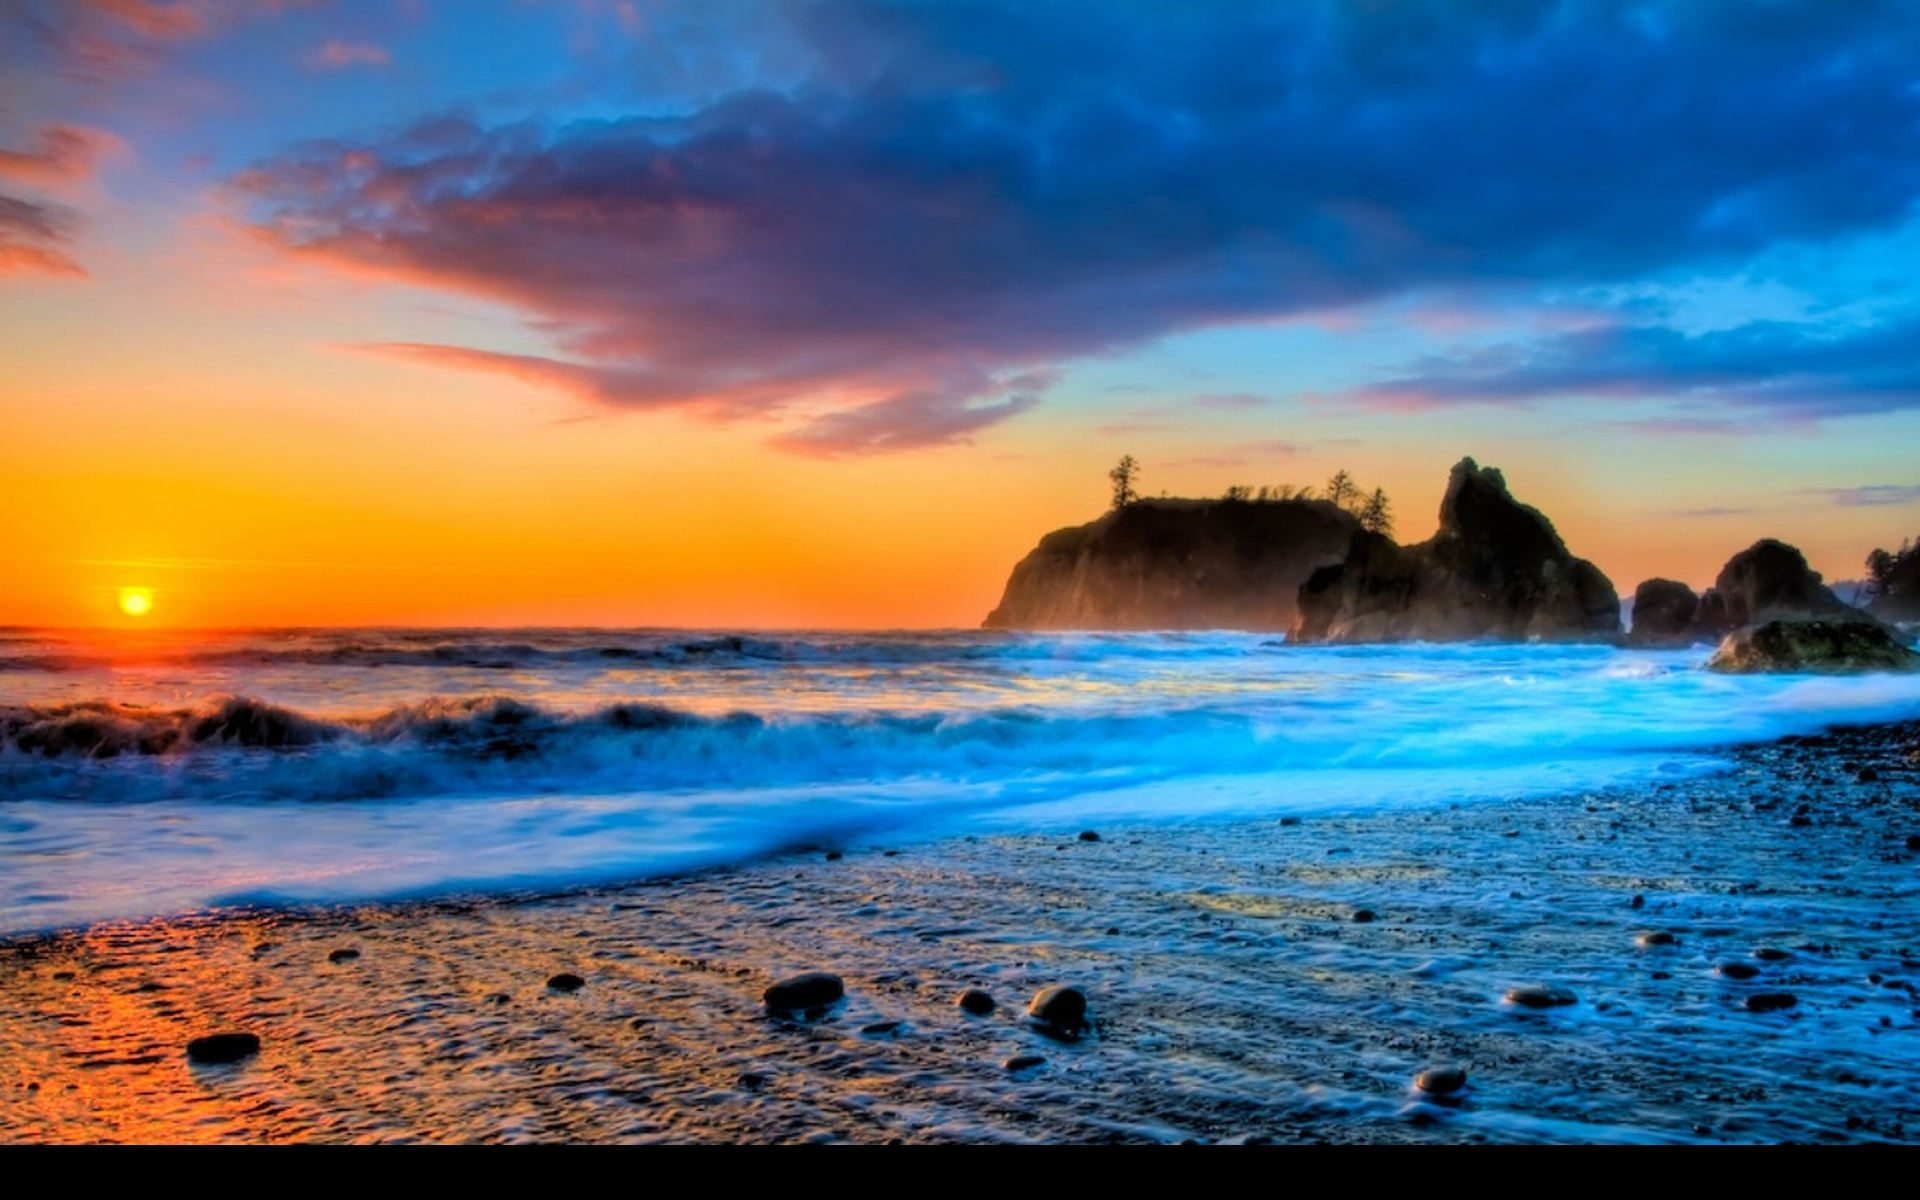 Cool Beach Sunsets Wallpapers Images amp Pictures   Becuo 1920x1200